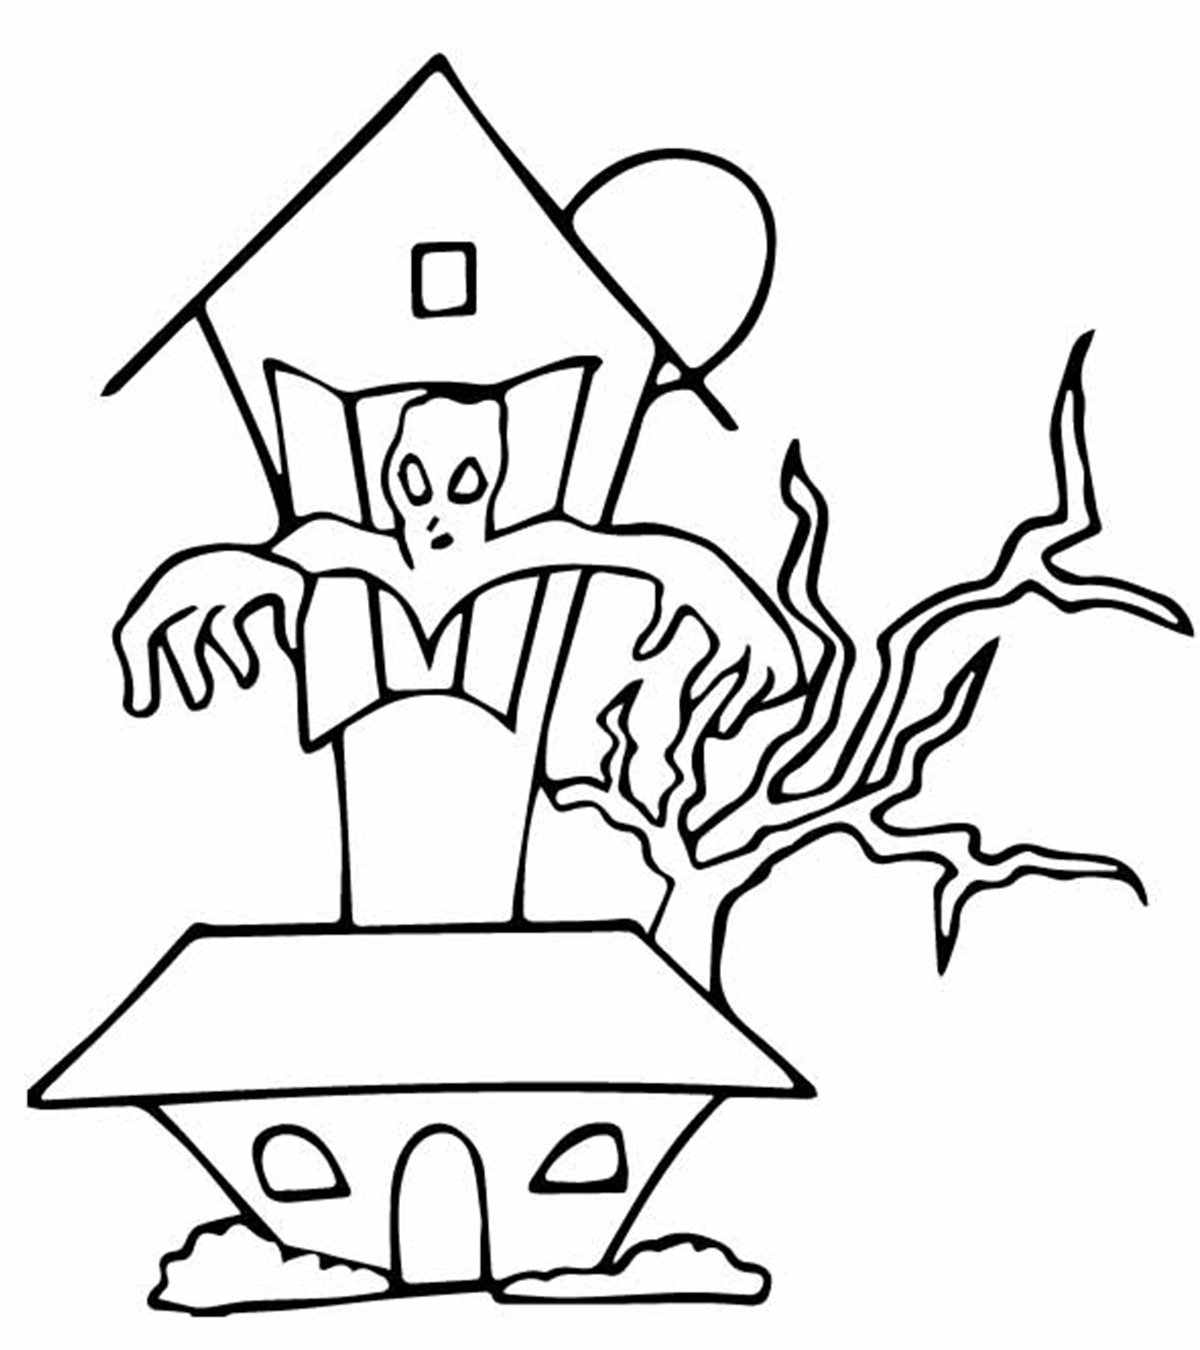 Disney Coloring Pages MomJunction